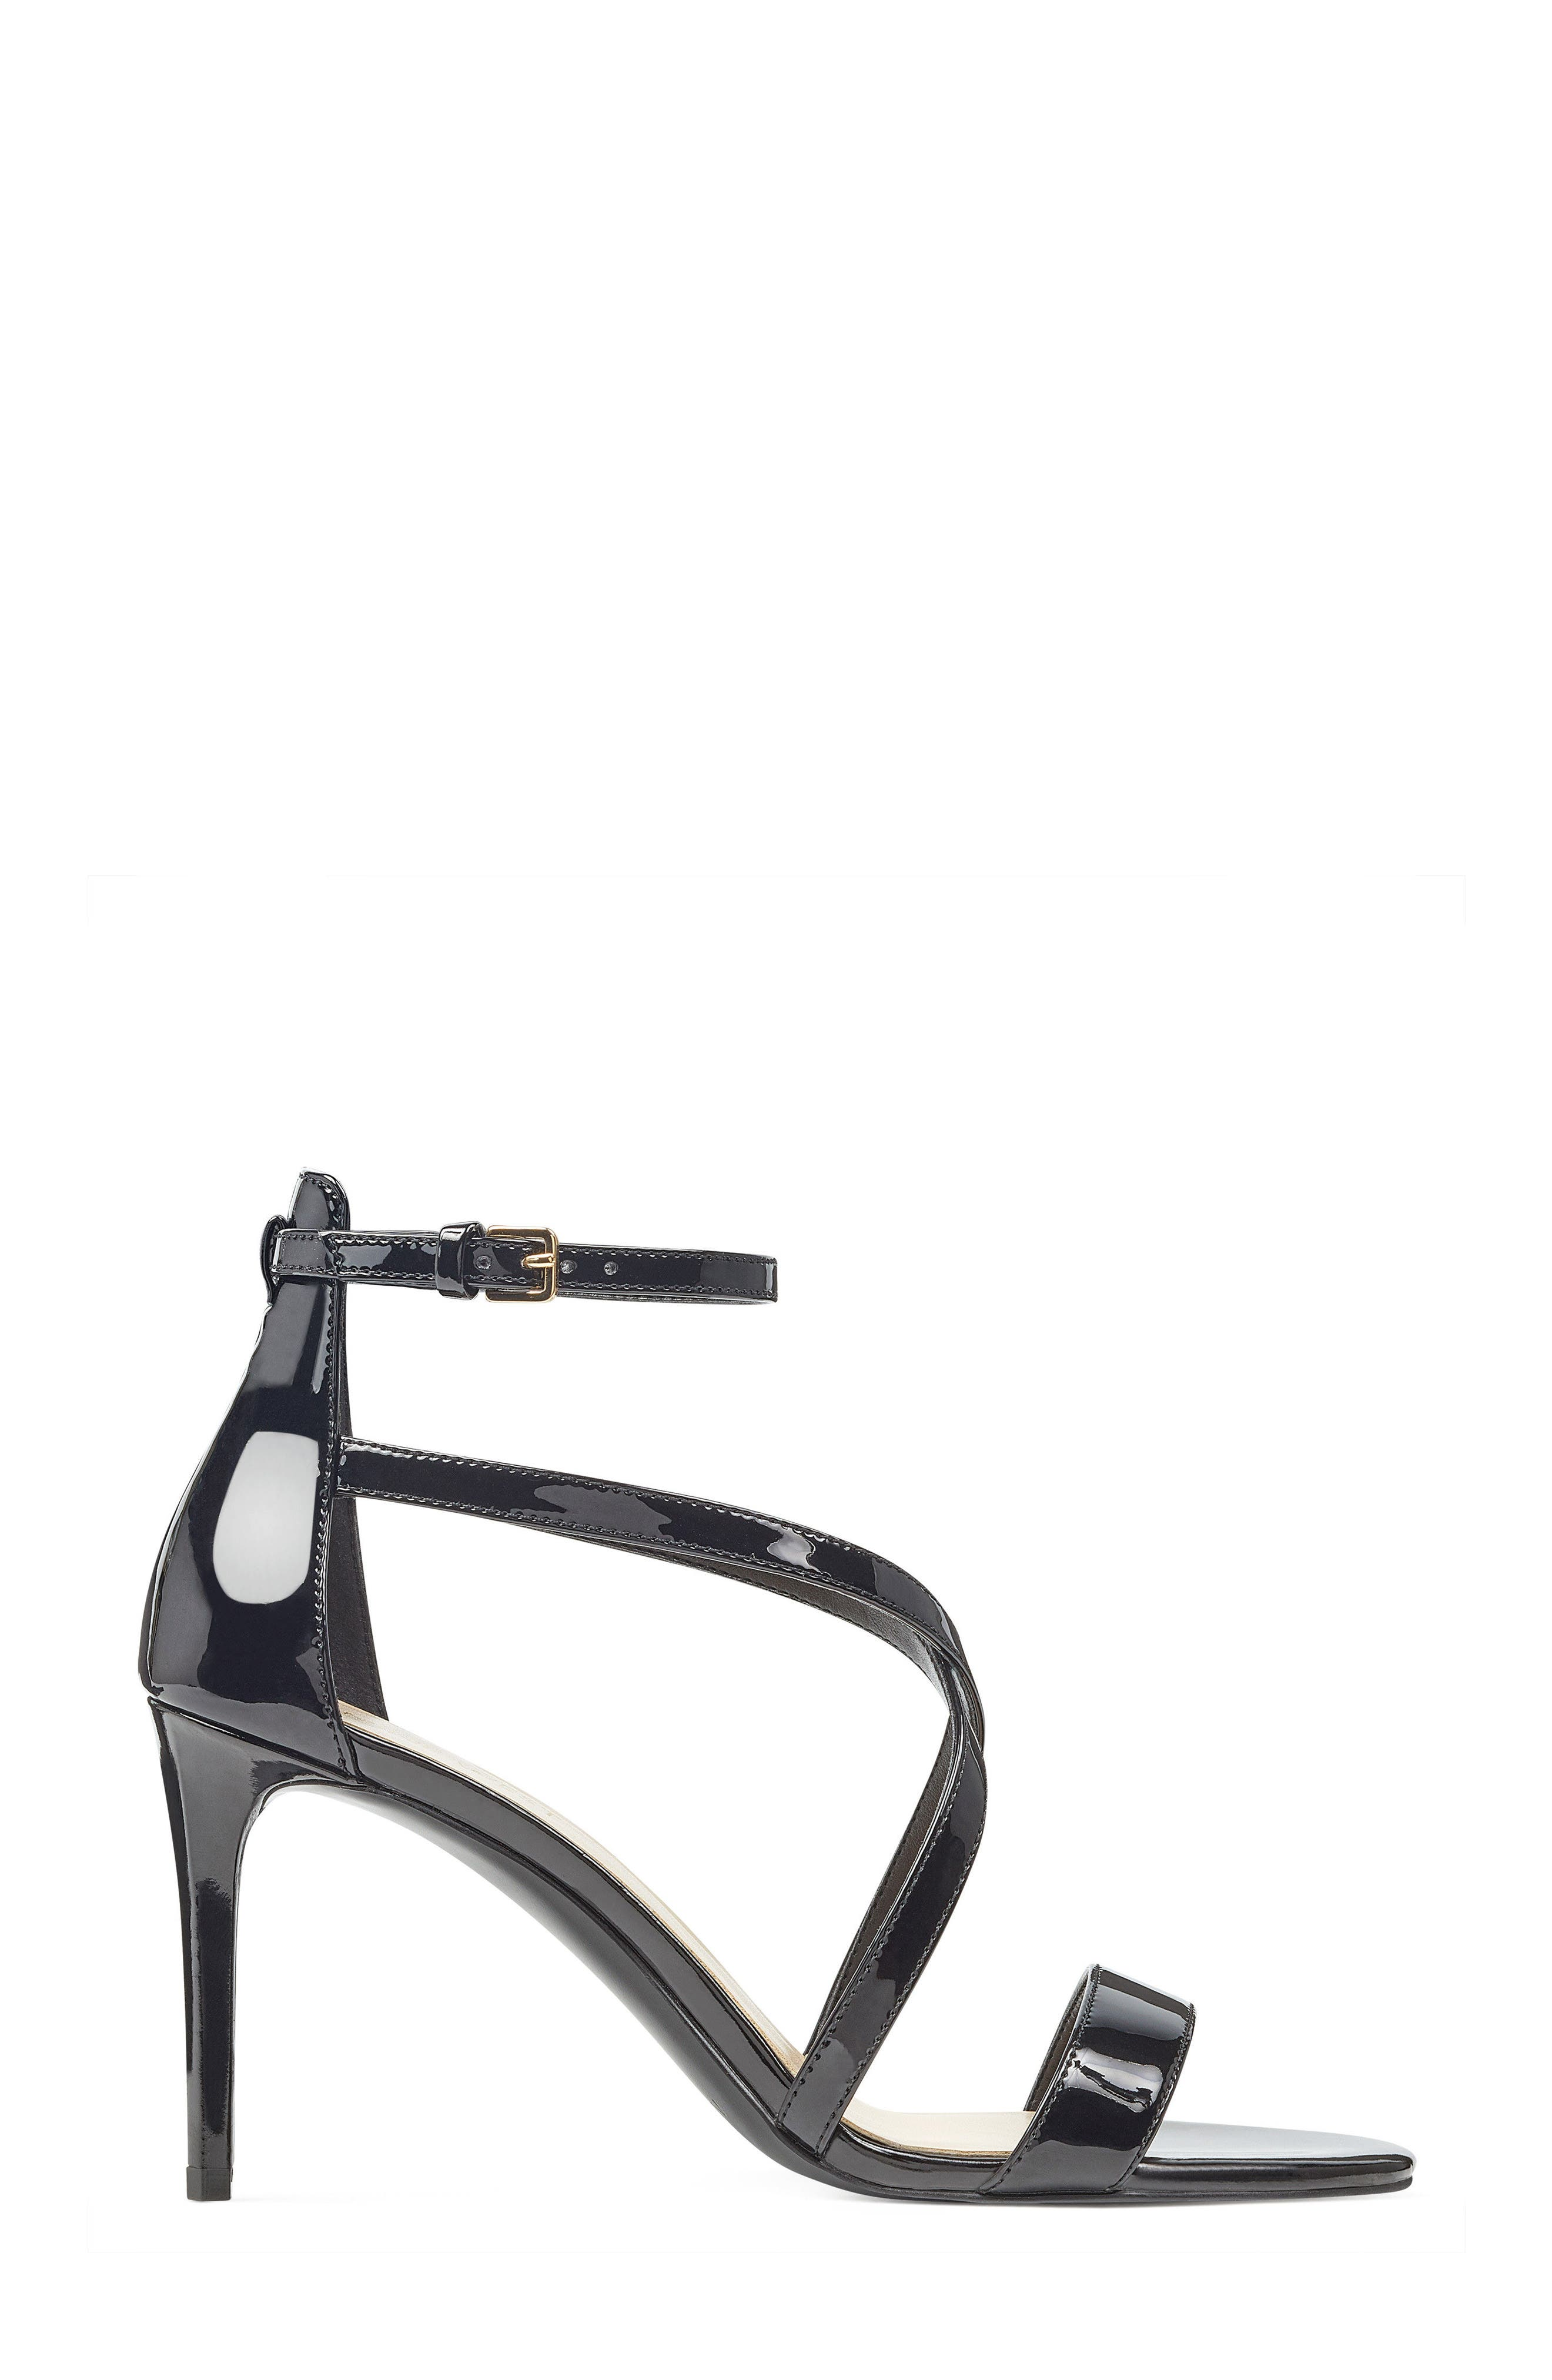 NINE WEST,                             Retail Therapy Strappy Sandal,                             Alternate thumbnail 3, color,                             001